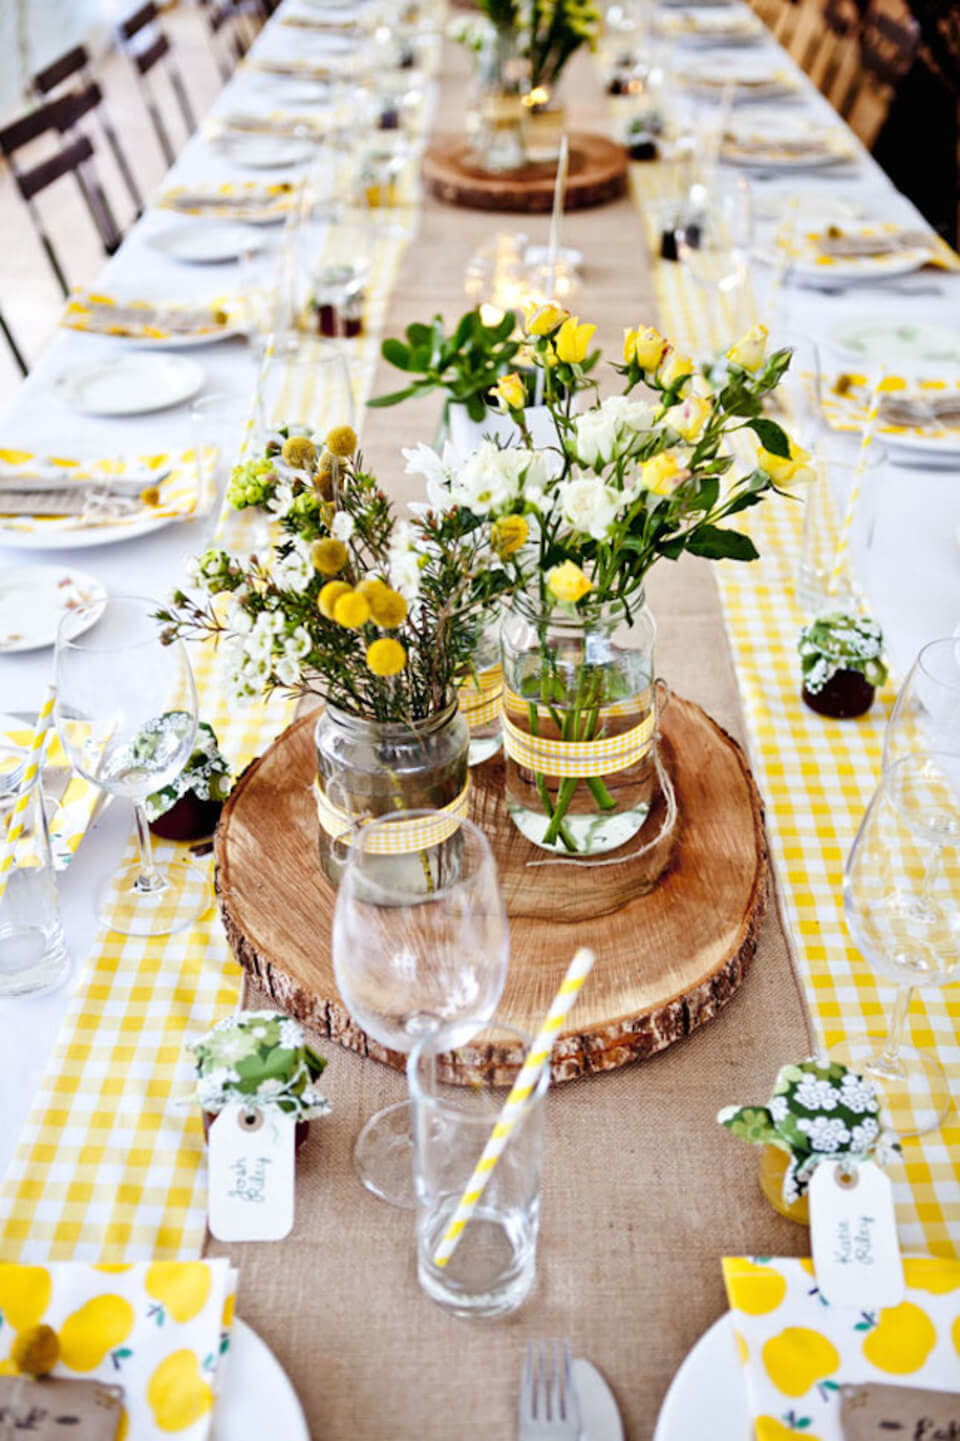 Cheerful Meadow-Themed Table Decor with Wooden Stump Plates